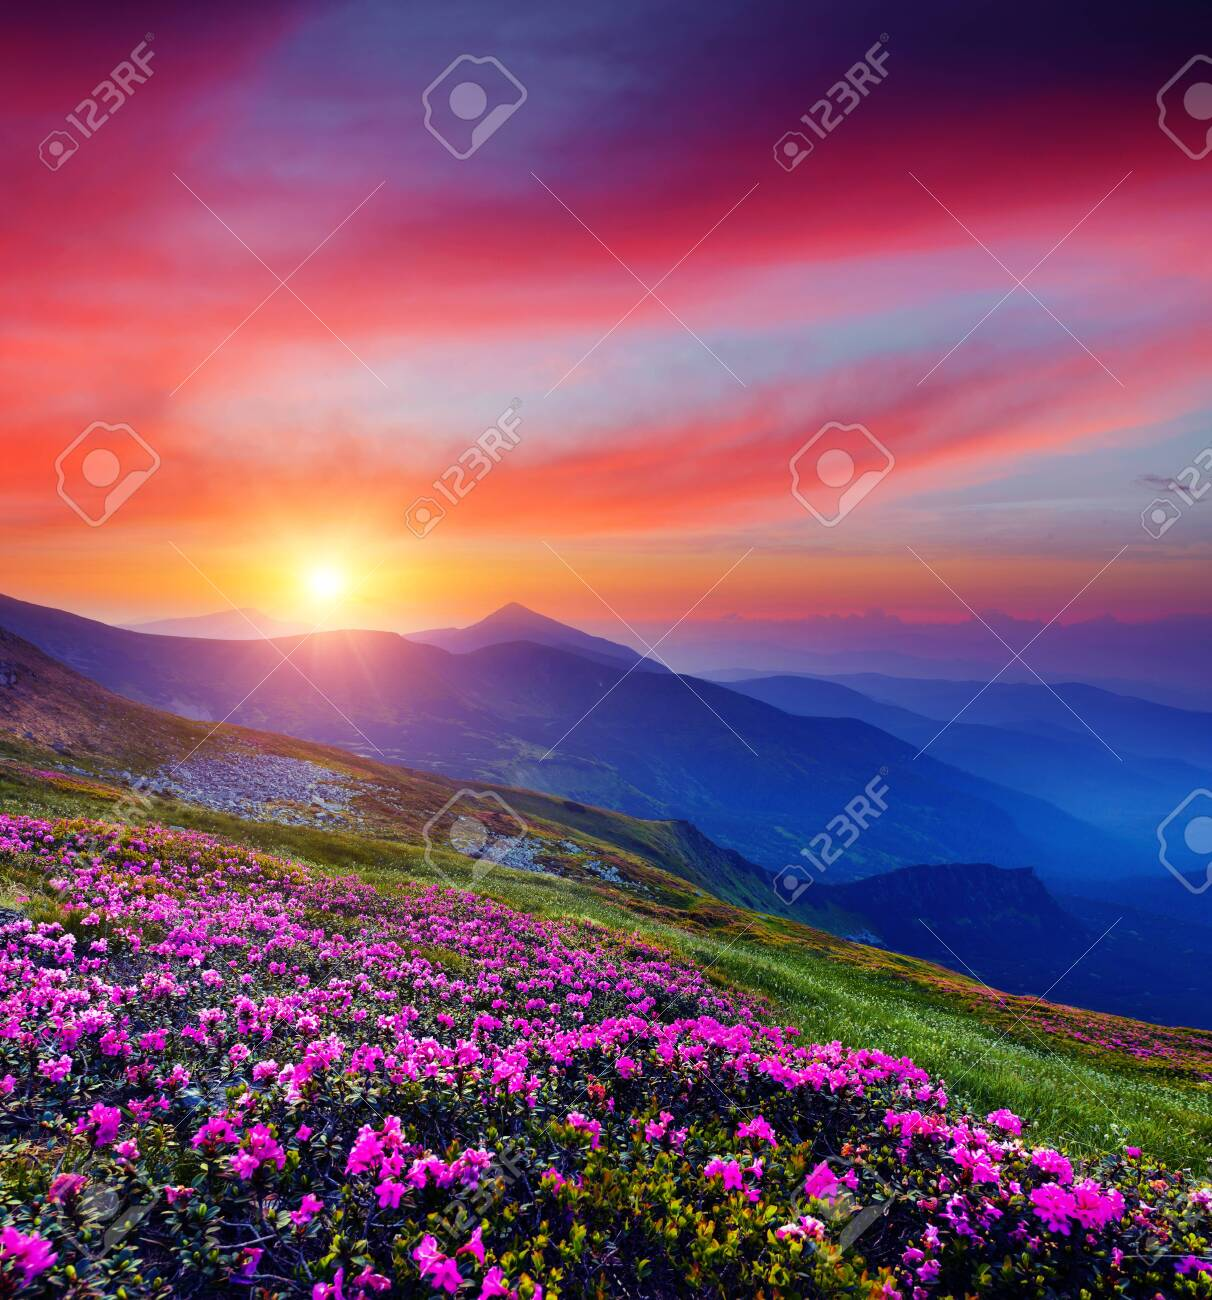 Pink flower rhododendrons at magical sunset. Location Carpathian mountain, Ukraine, Europe. Most popular tourist destination. Scenic image of idyllic summer wallpaper. Discover the beauty of earth. - 148242533